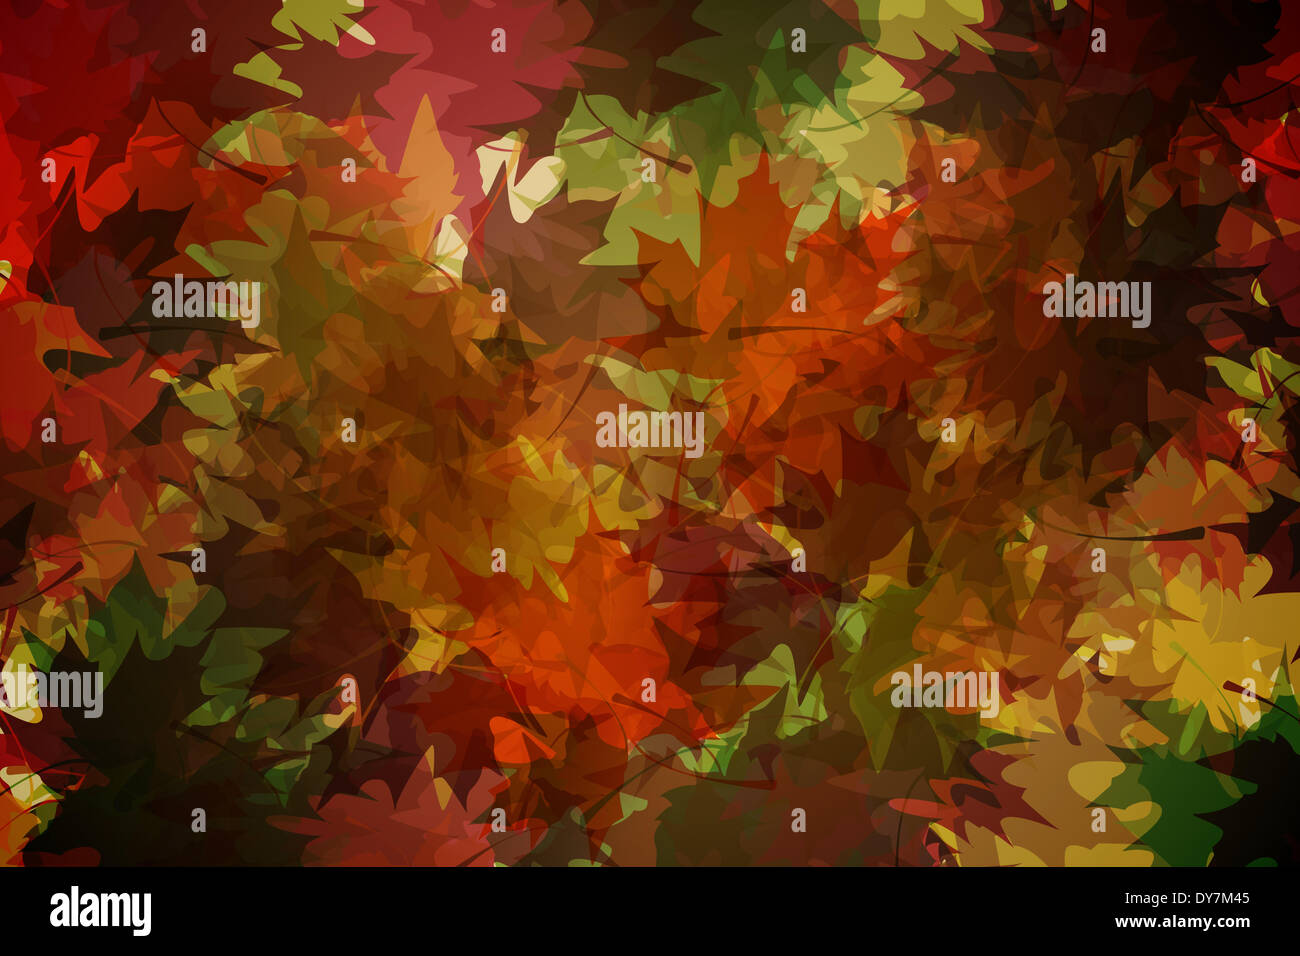 Autumnal leaf pattern in warm tones - Stock Image